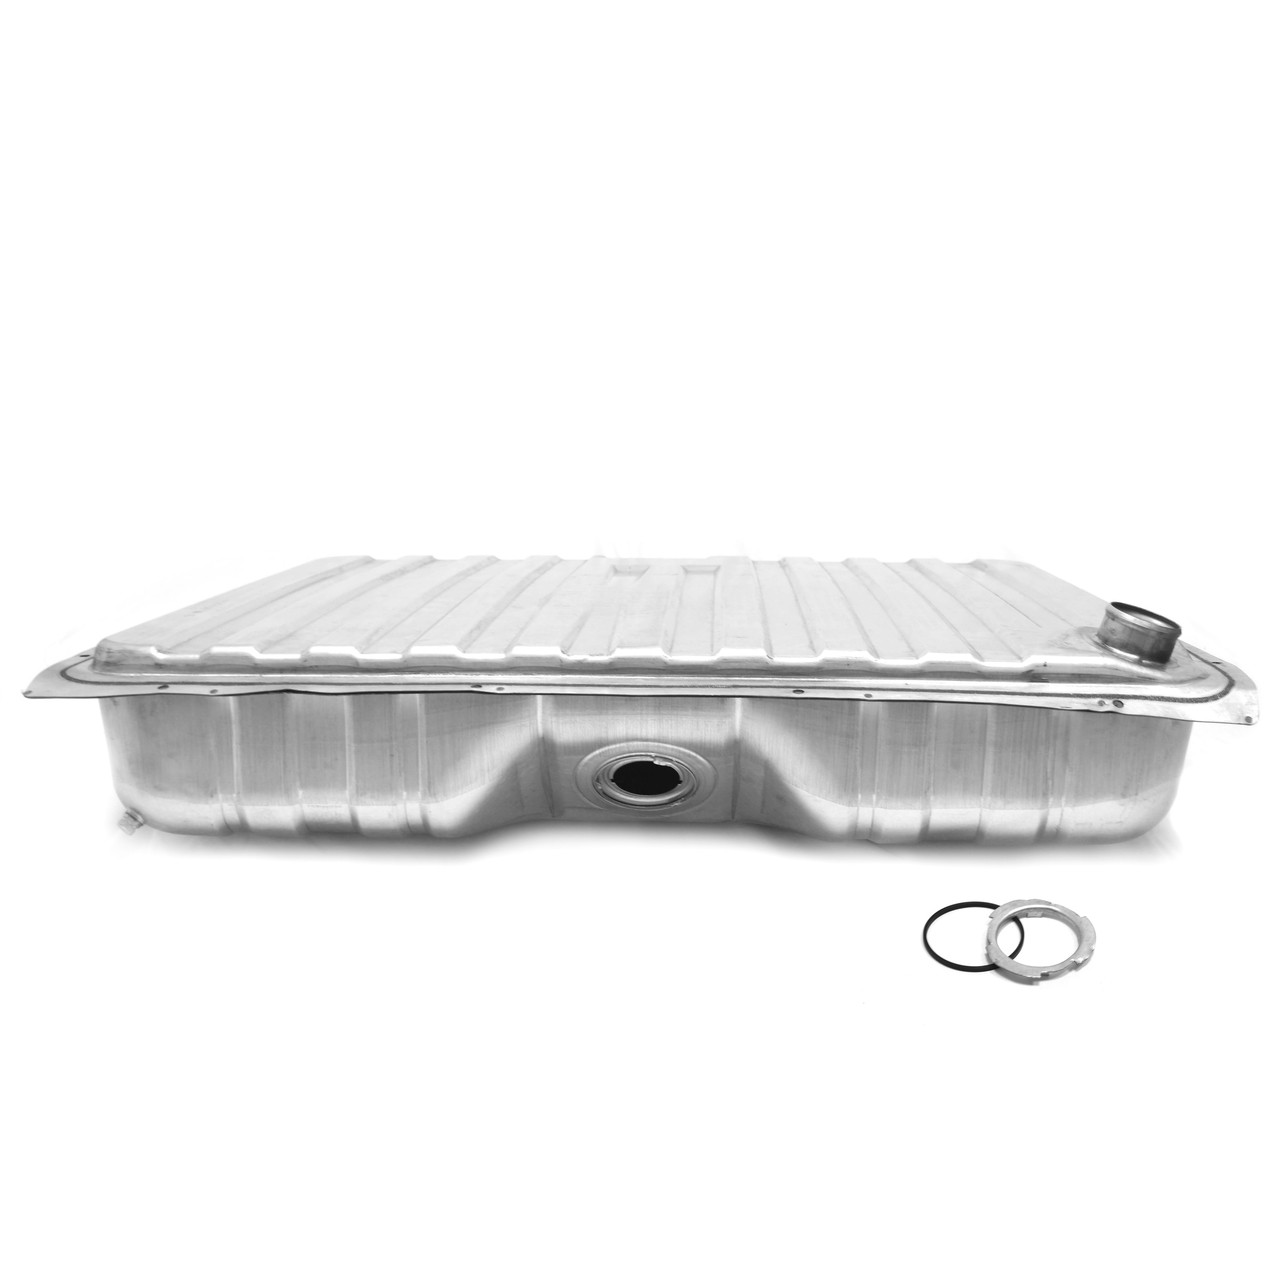 Fuel Tank With Drain 20 Gallon Except Station Wagon [FCM-EG027A]